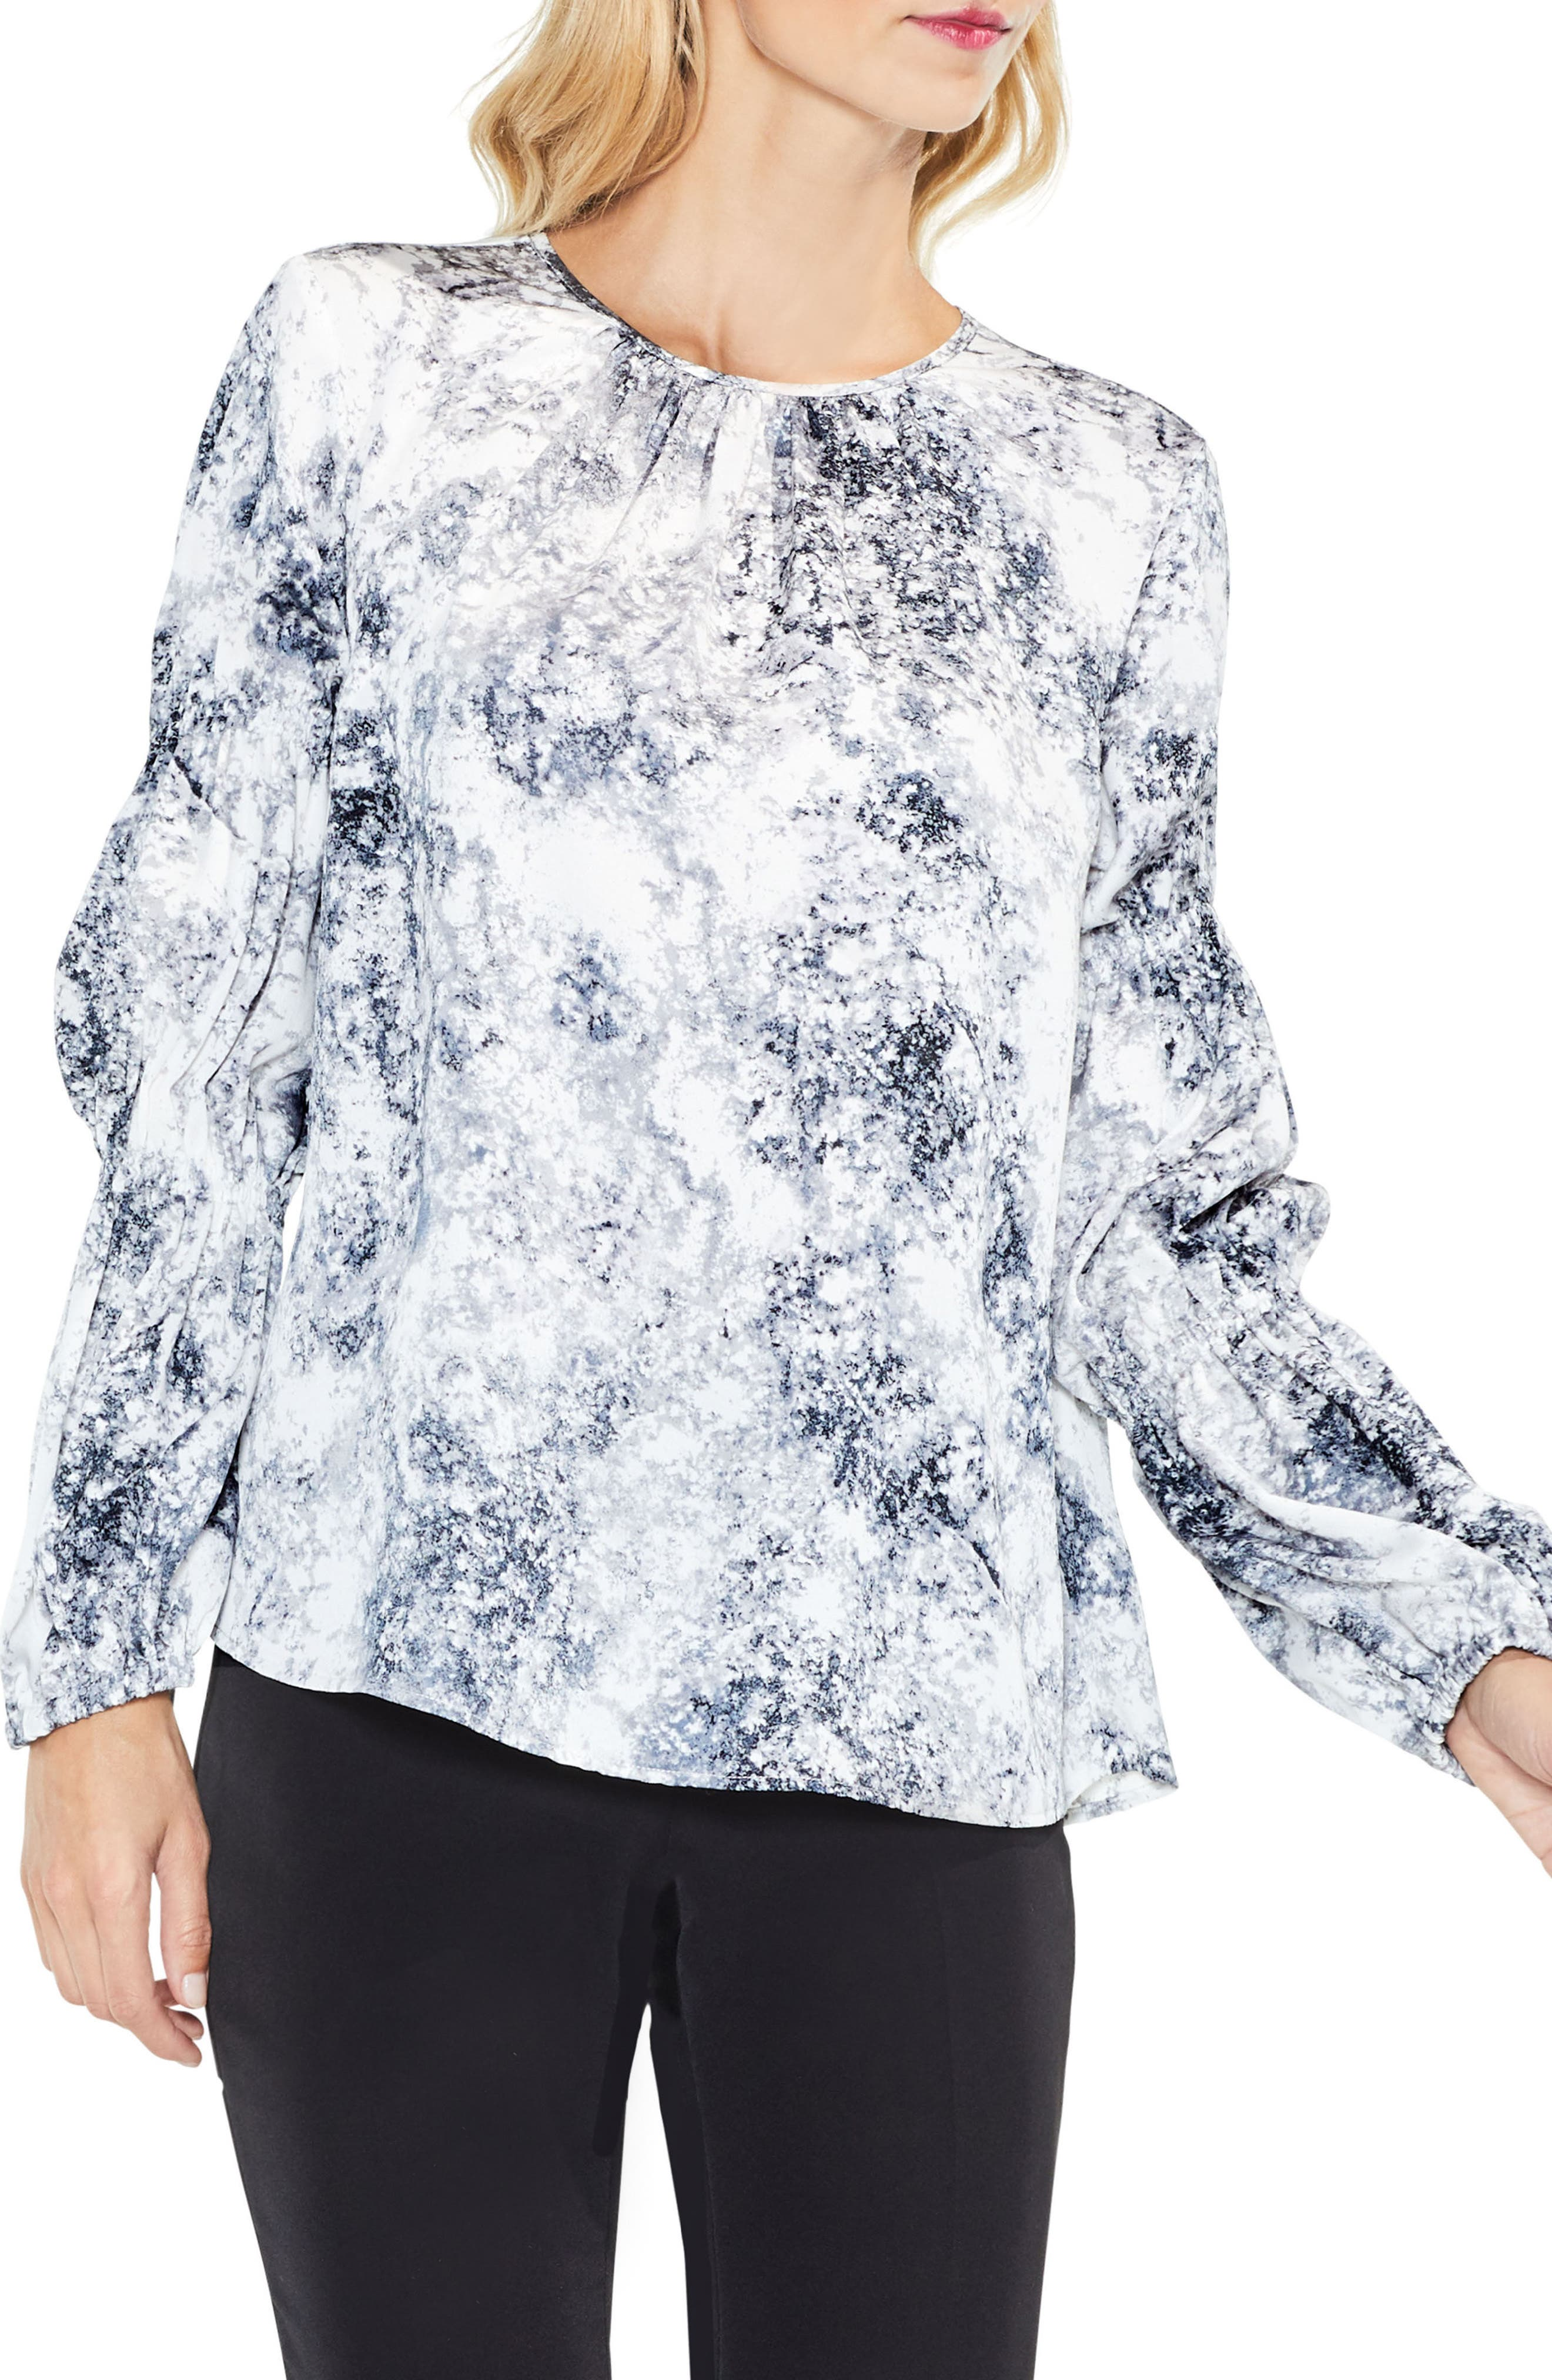 Main Image - Vince Camuto Speckled Cinch Sleeve Top